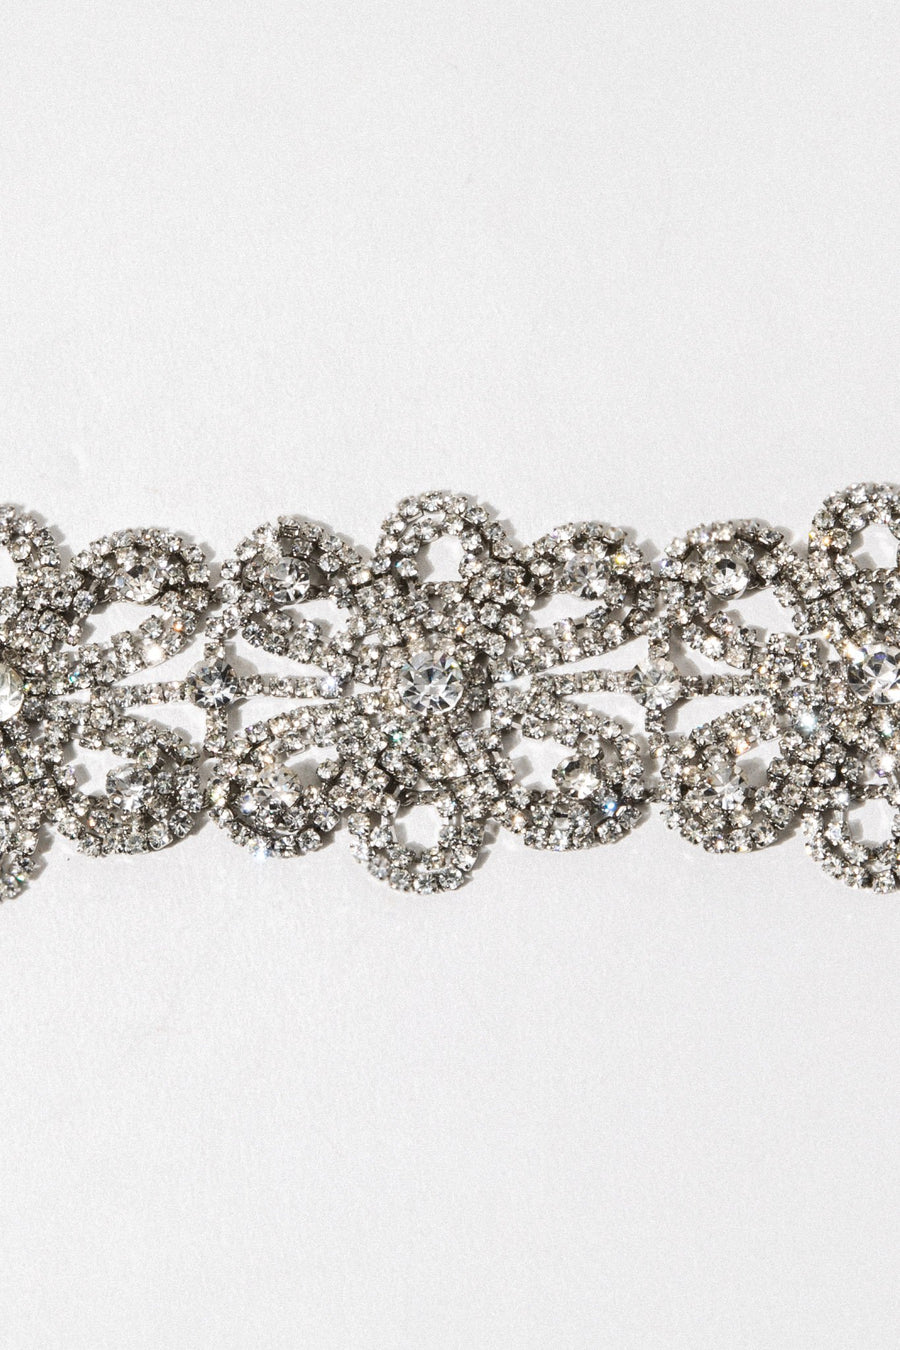 CW collection sale Silver / FINAL SALE The Elizabethan Choker